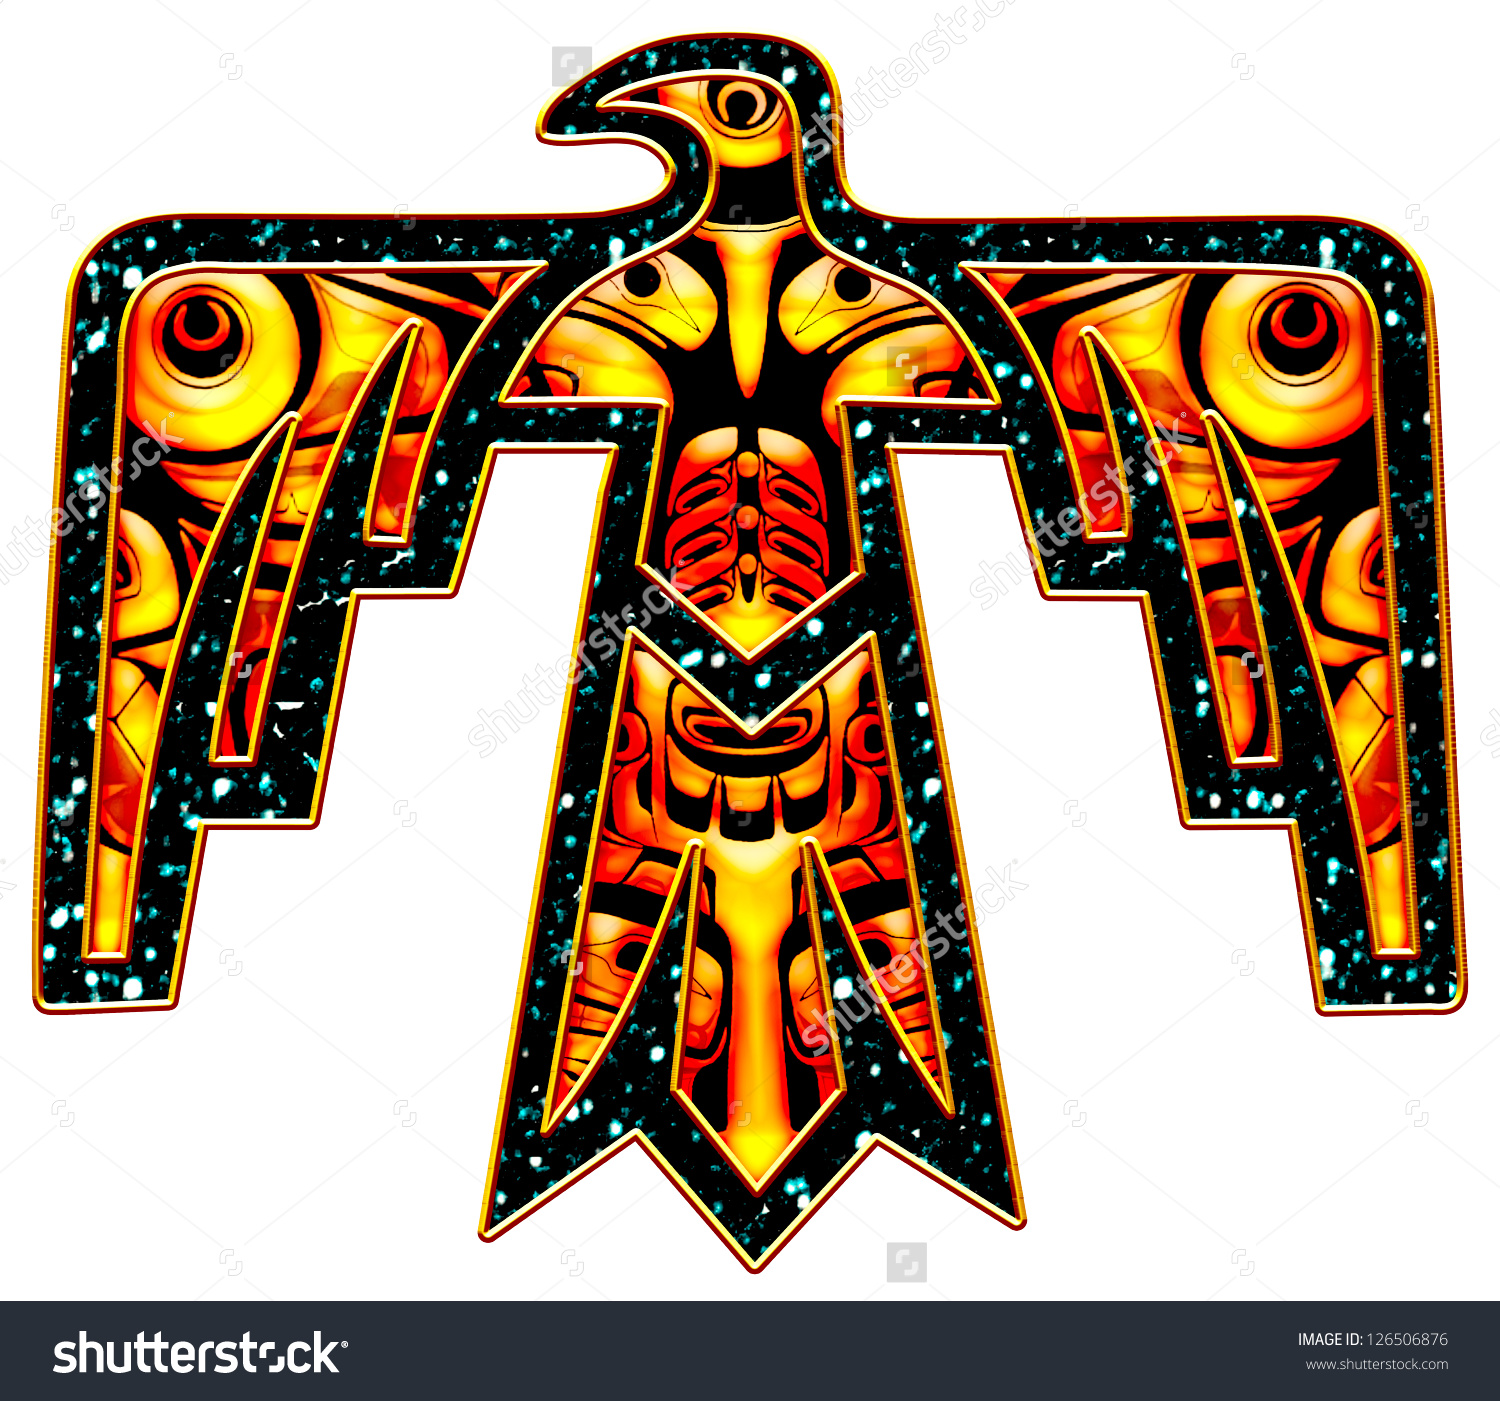 native america indian symbol clipart in color - Clipground